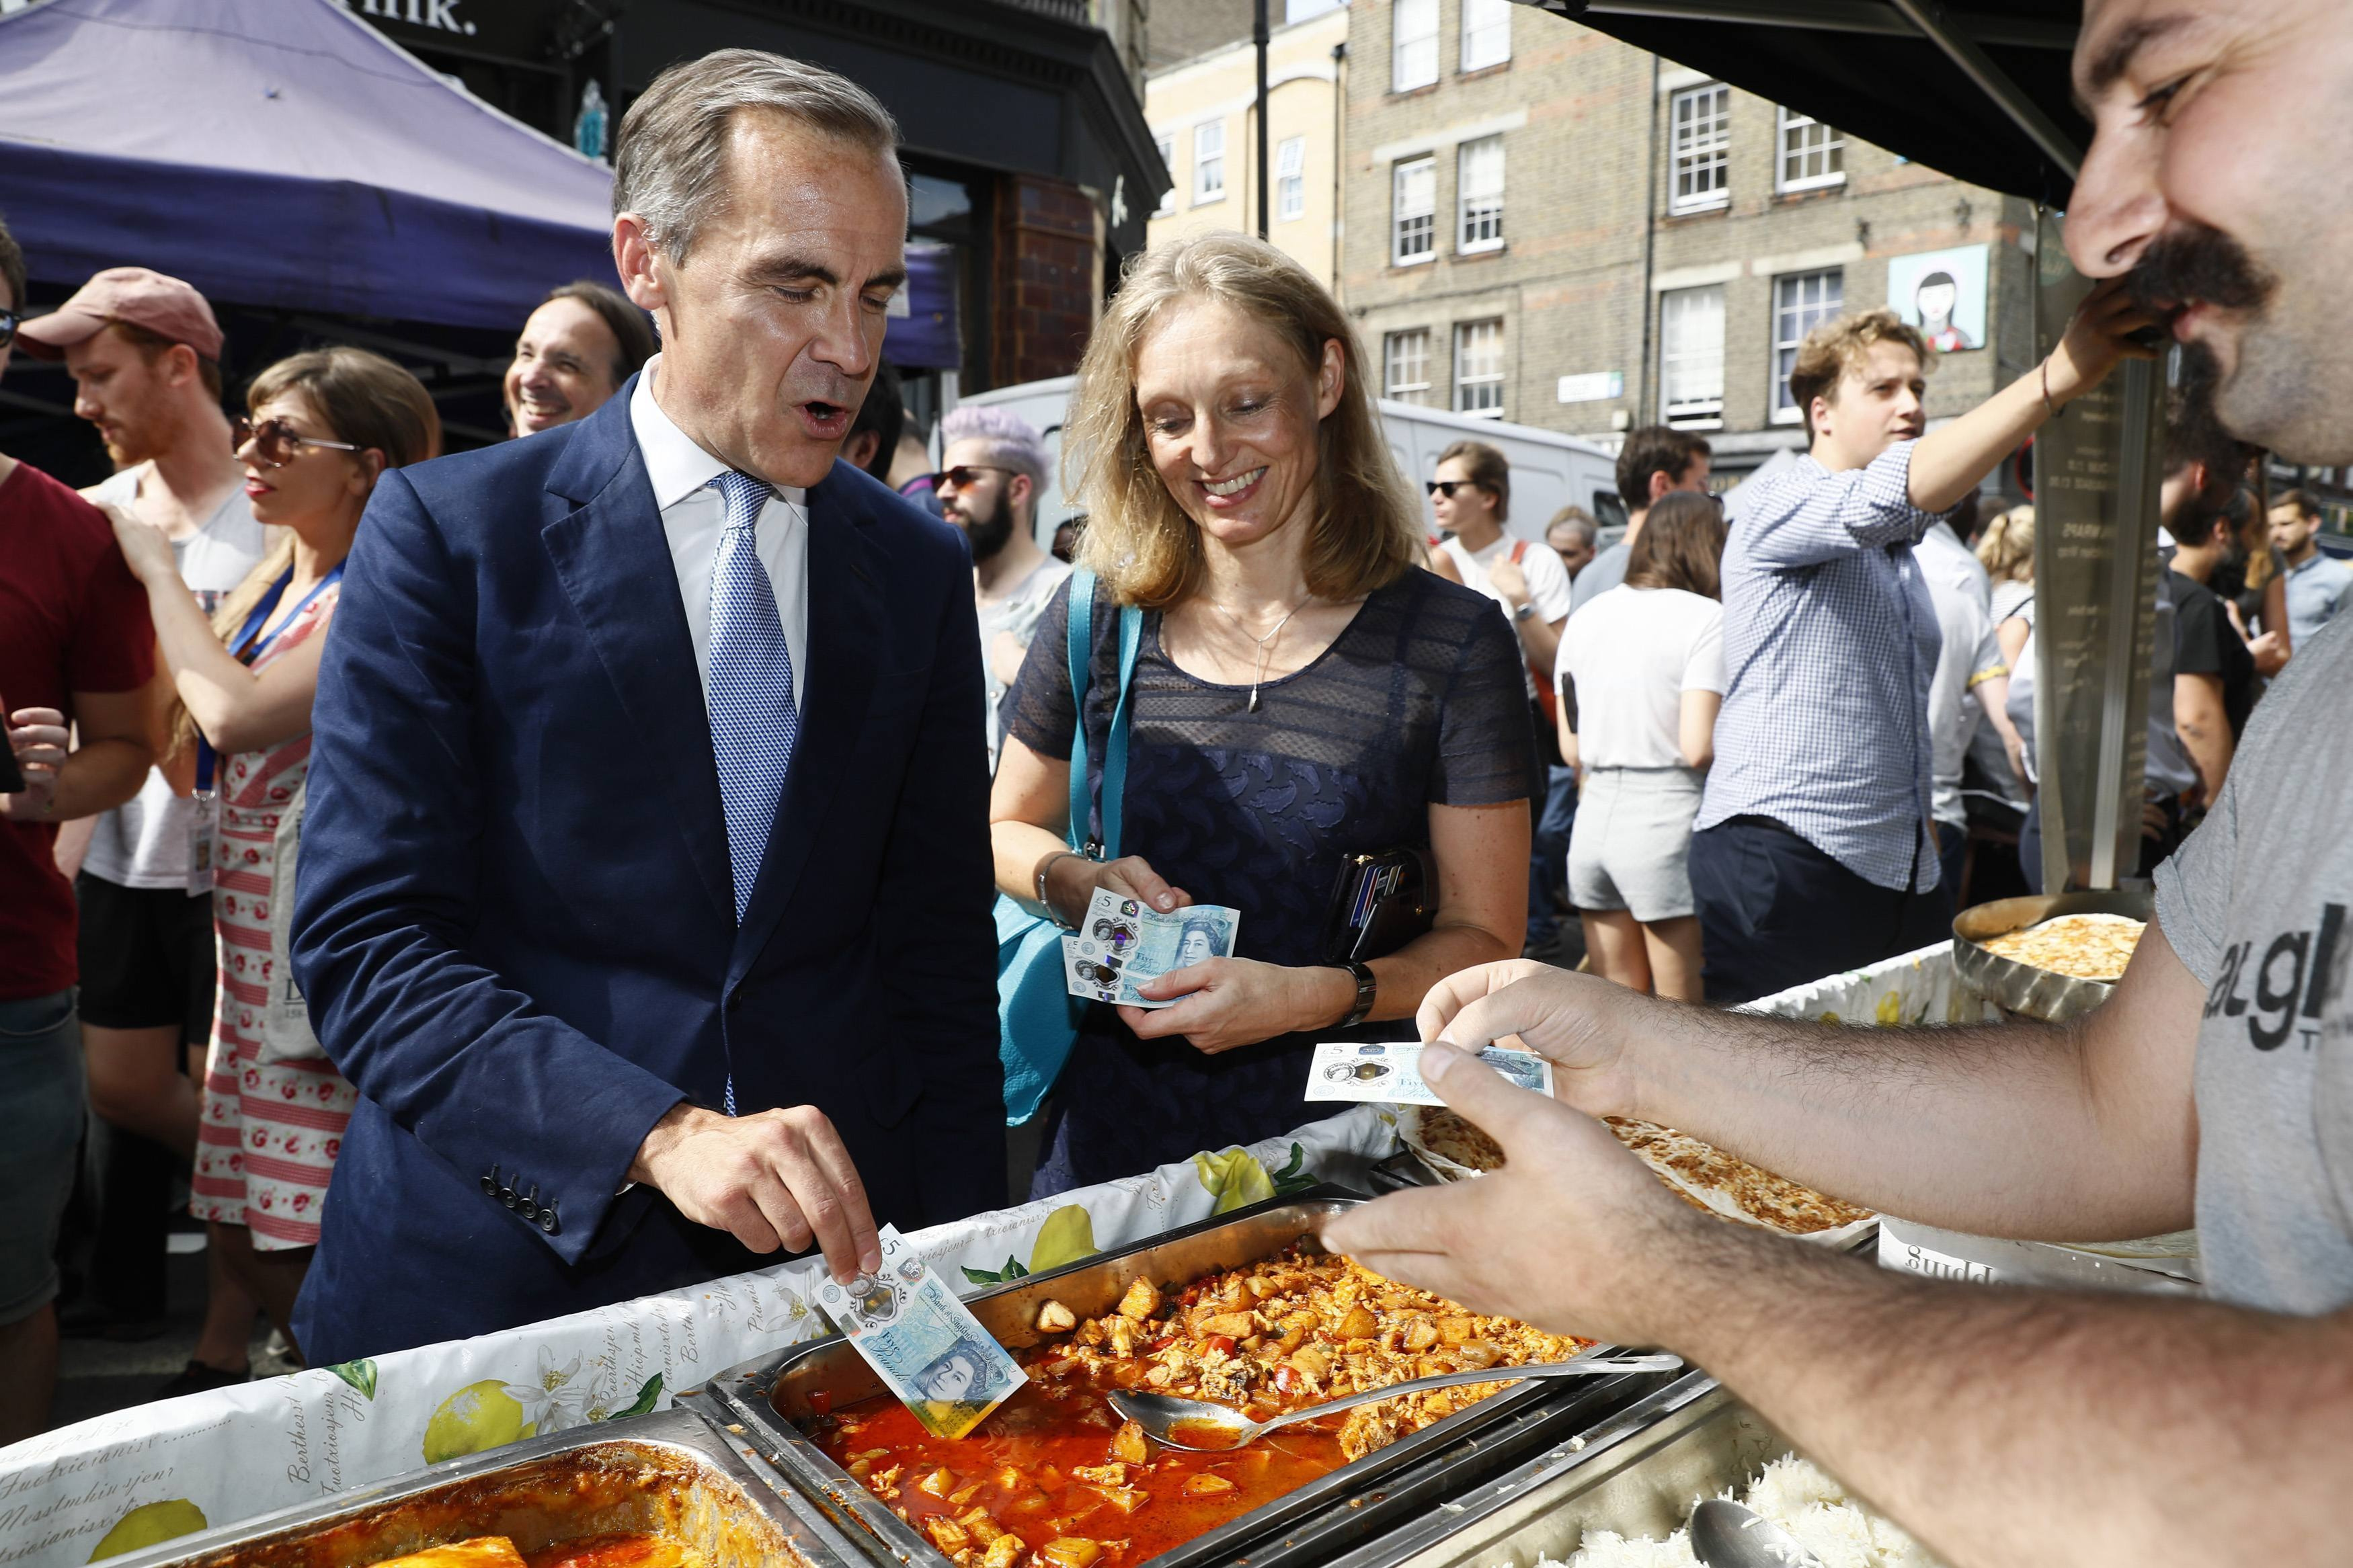 Bank of England governor Mark Carney tests a new polymer five pound note as he buys lunch at Whitecross Street Market.